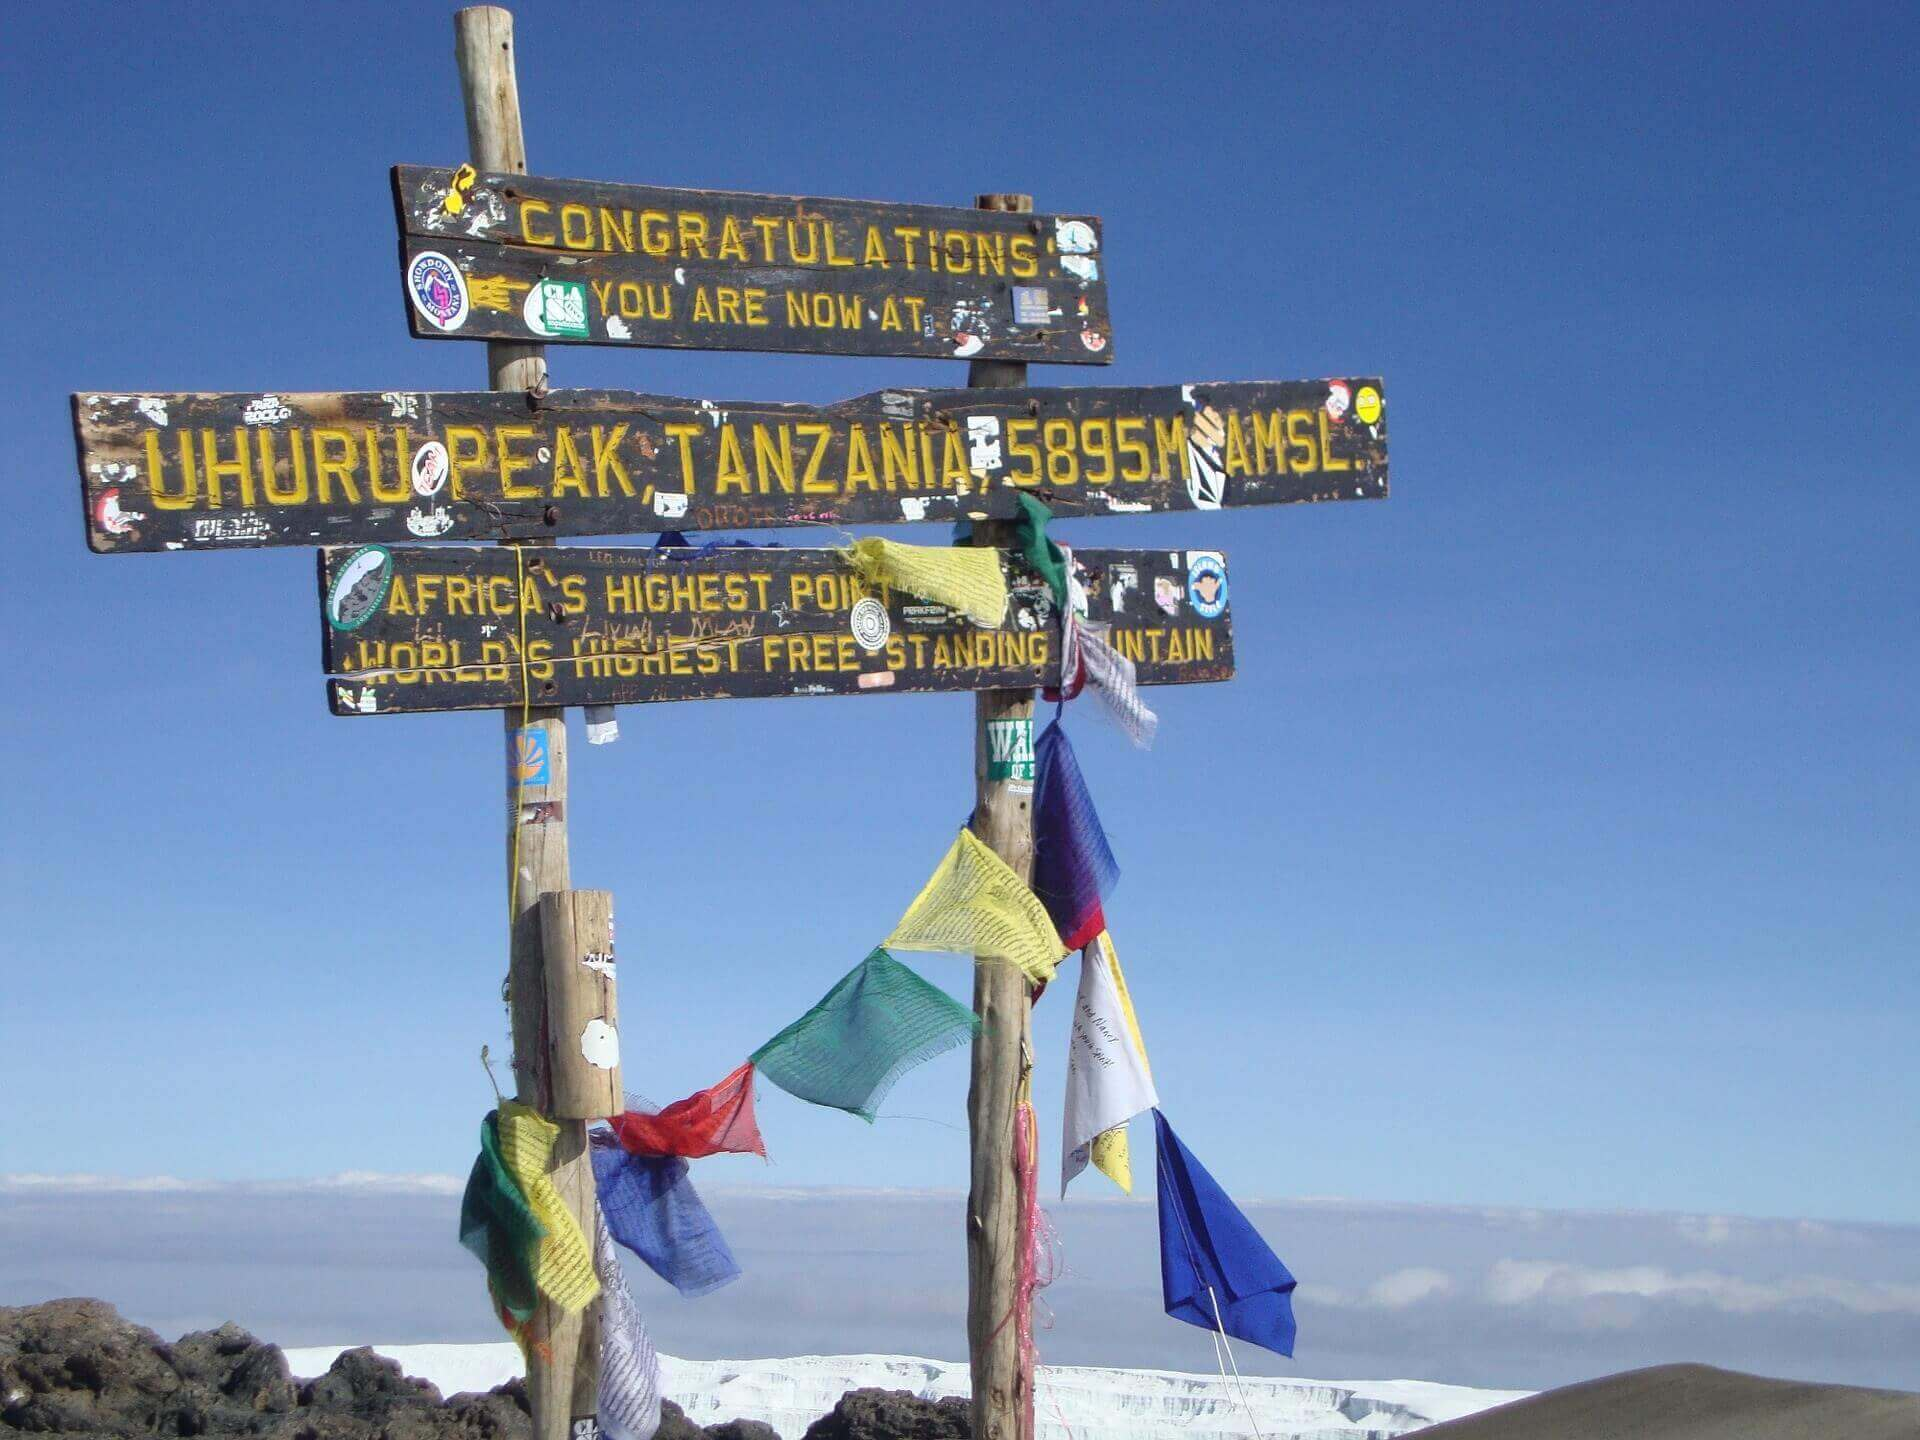 Uhuru Peak sign on the summit of Mount Kilimanjaro in Tanzania